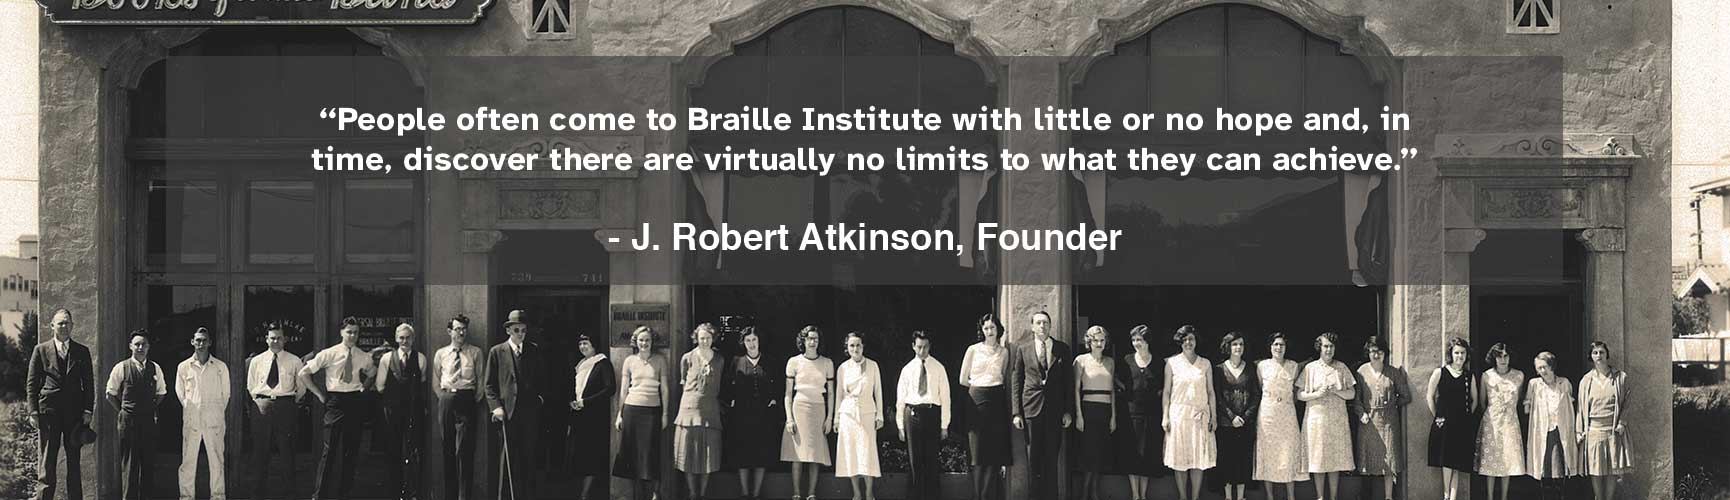 """Bob Atkinson Quote that reads """"People often come to Braille Institute with little or no hope and, in time, discover there are virtually no limits to what they can achieve."""""""